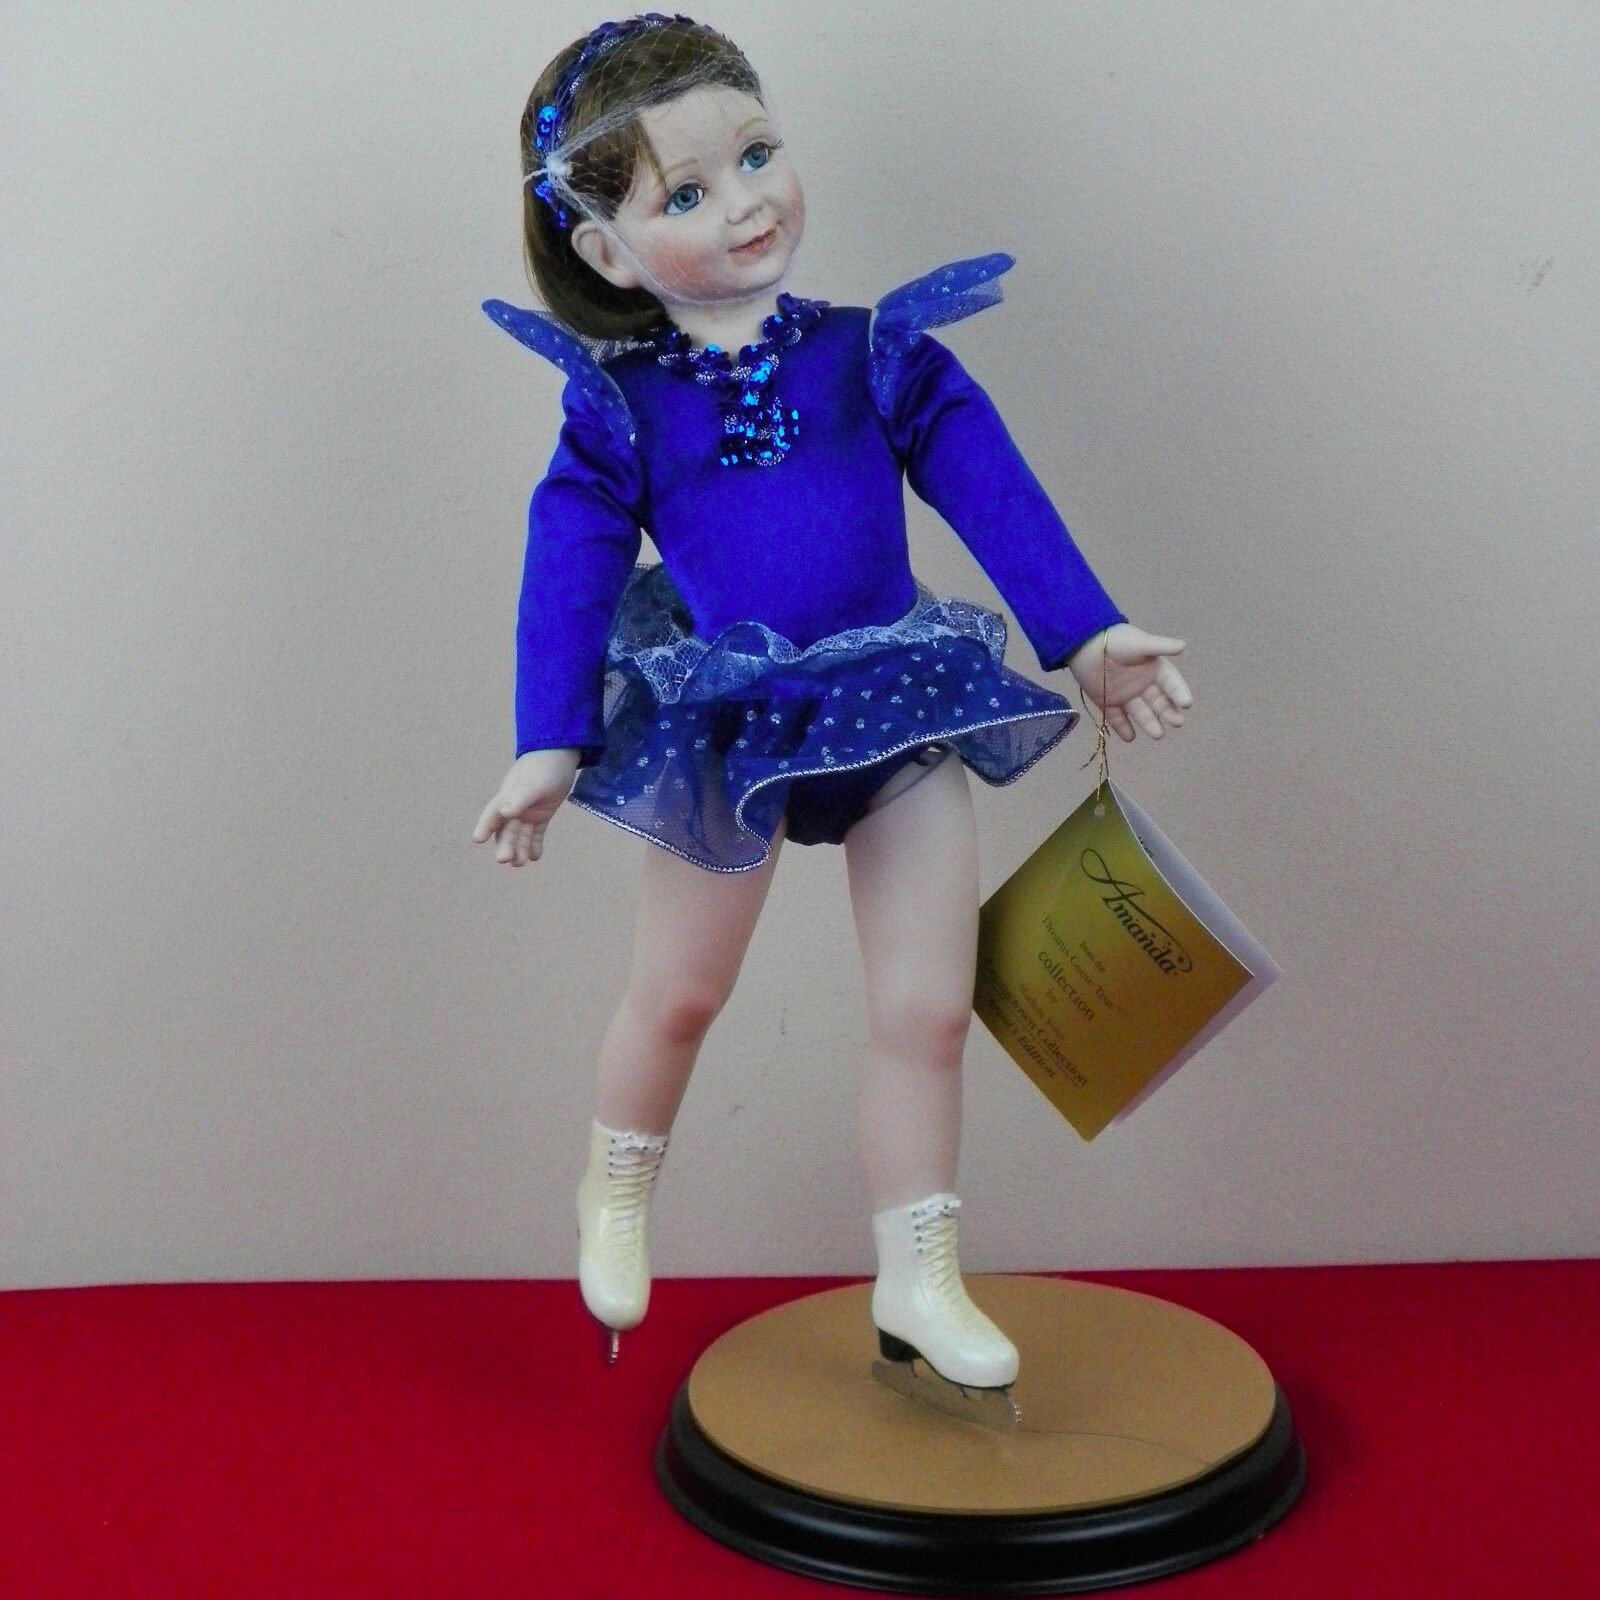 Amanda The Skater Doll Dreams Come True Collection Georgetown Marlene Sirko